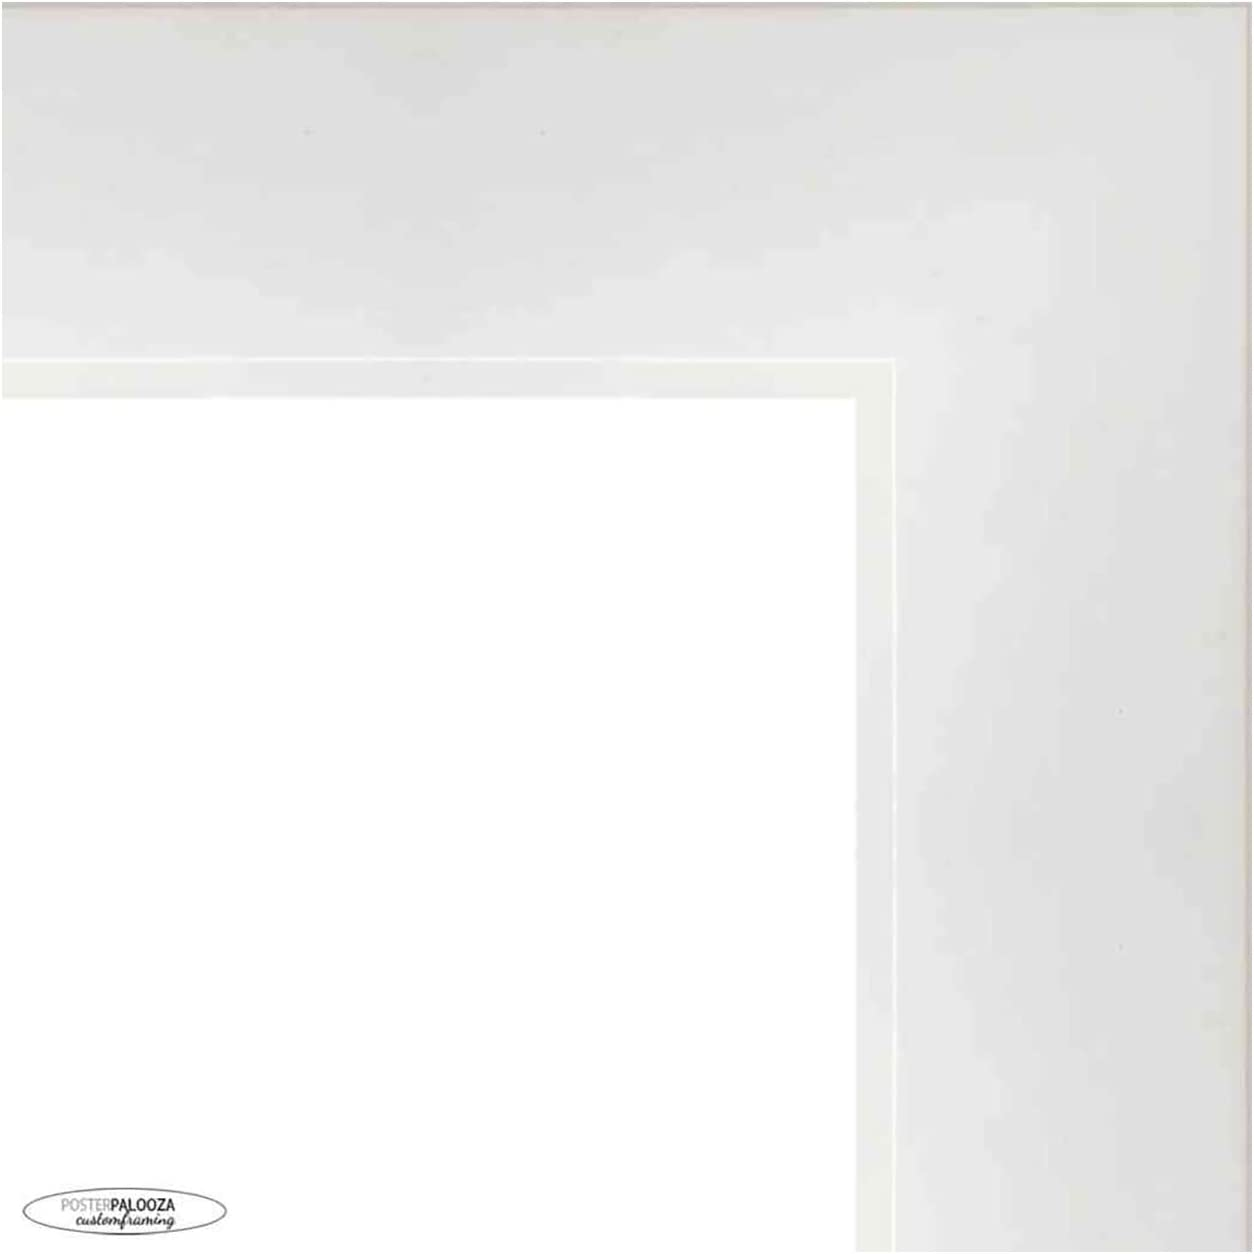 Ranking TOP3 Poster Palooza 25x20 Traditional favorite White Complete Fra Wood Picture